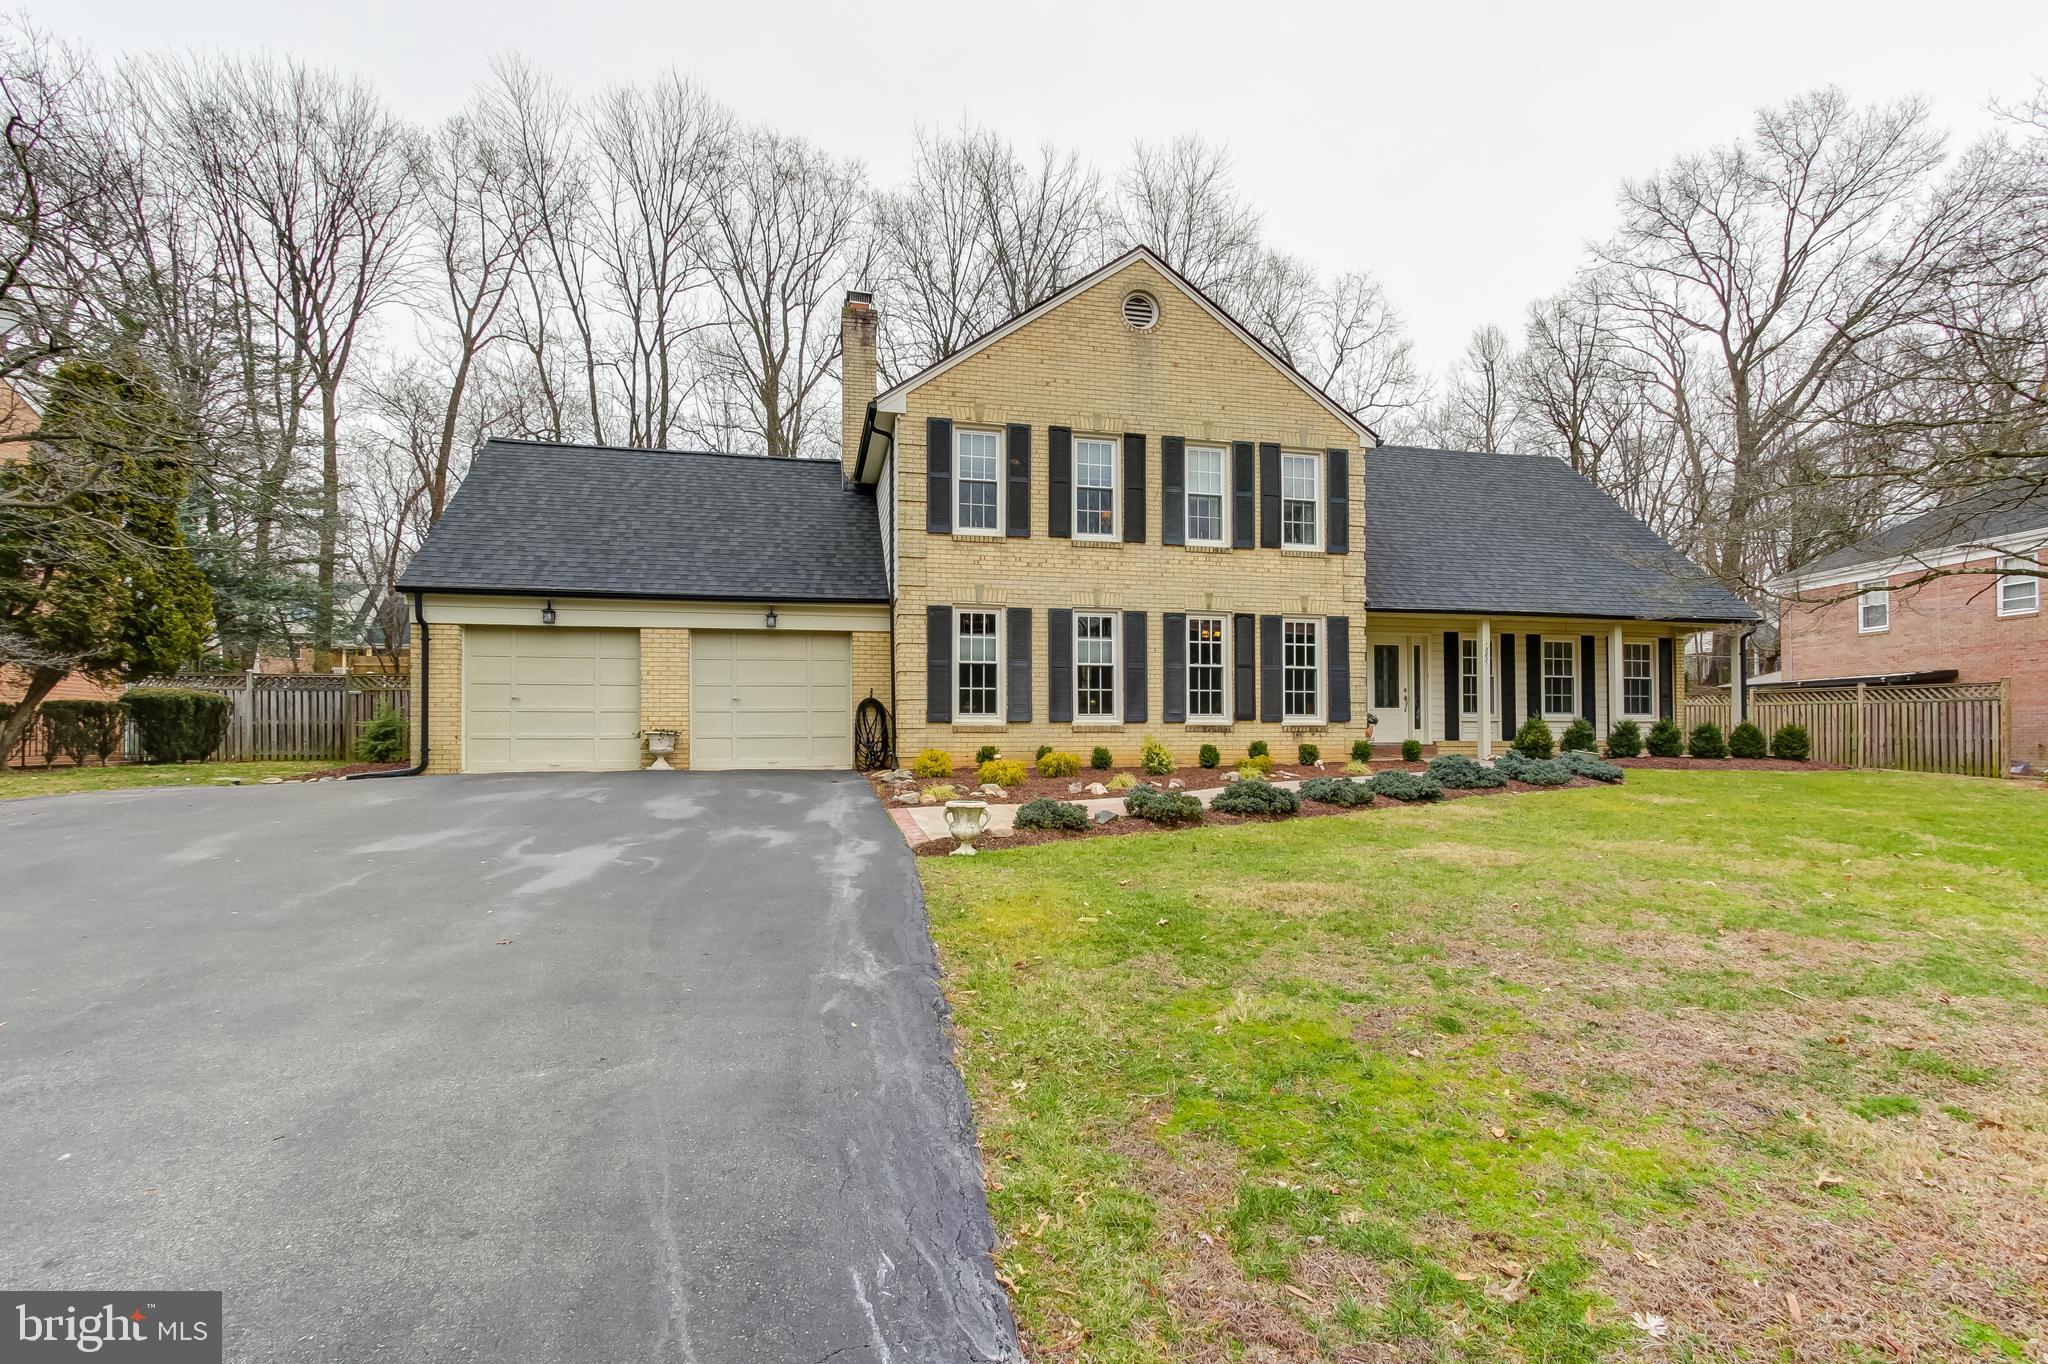 13821 NORTH GATE DRIVE, SILVER SPRING, MD 20906